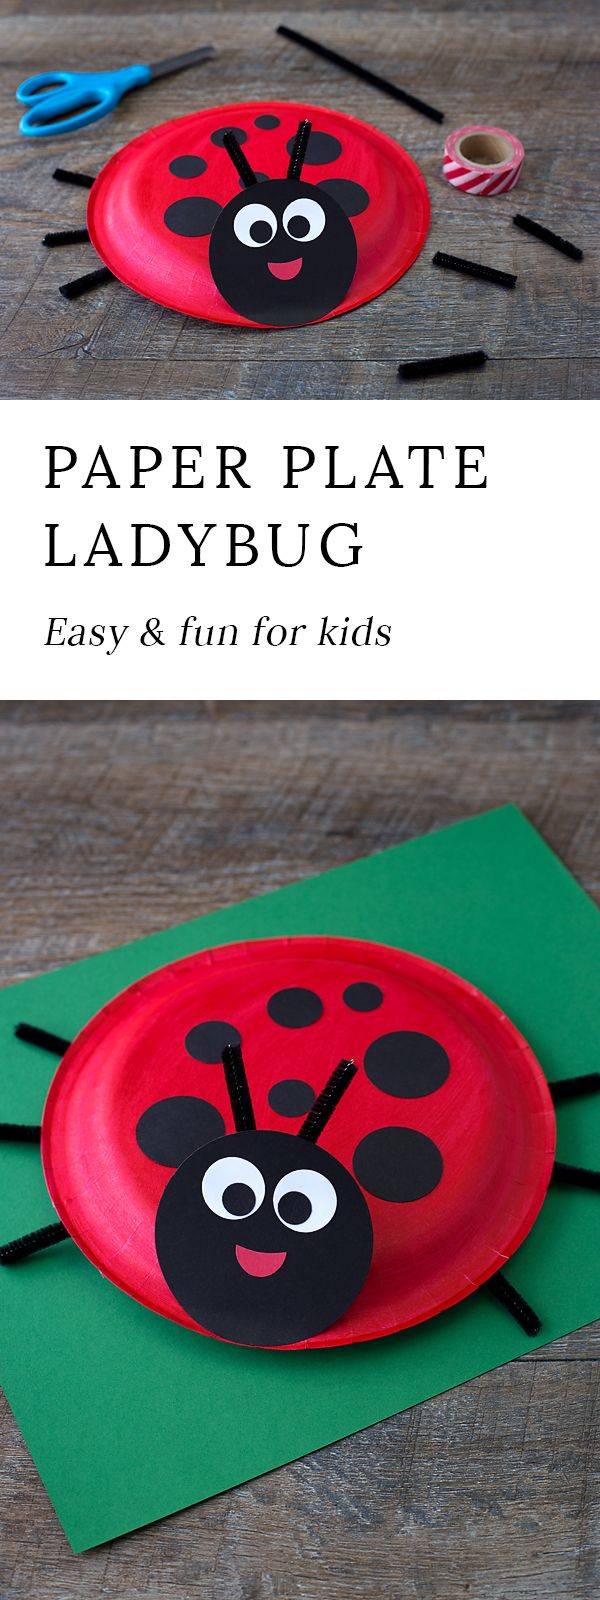 Learn how to make a simple Paper Plate Ladybug with kids. It's perfect for summer, insect lovers, and for strengthing fine-motor skills.   via @https://www.pinterest.com/fireflymudpie/